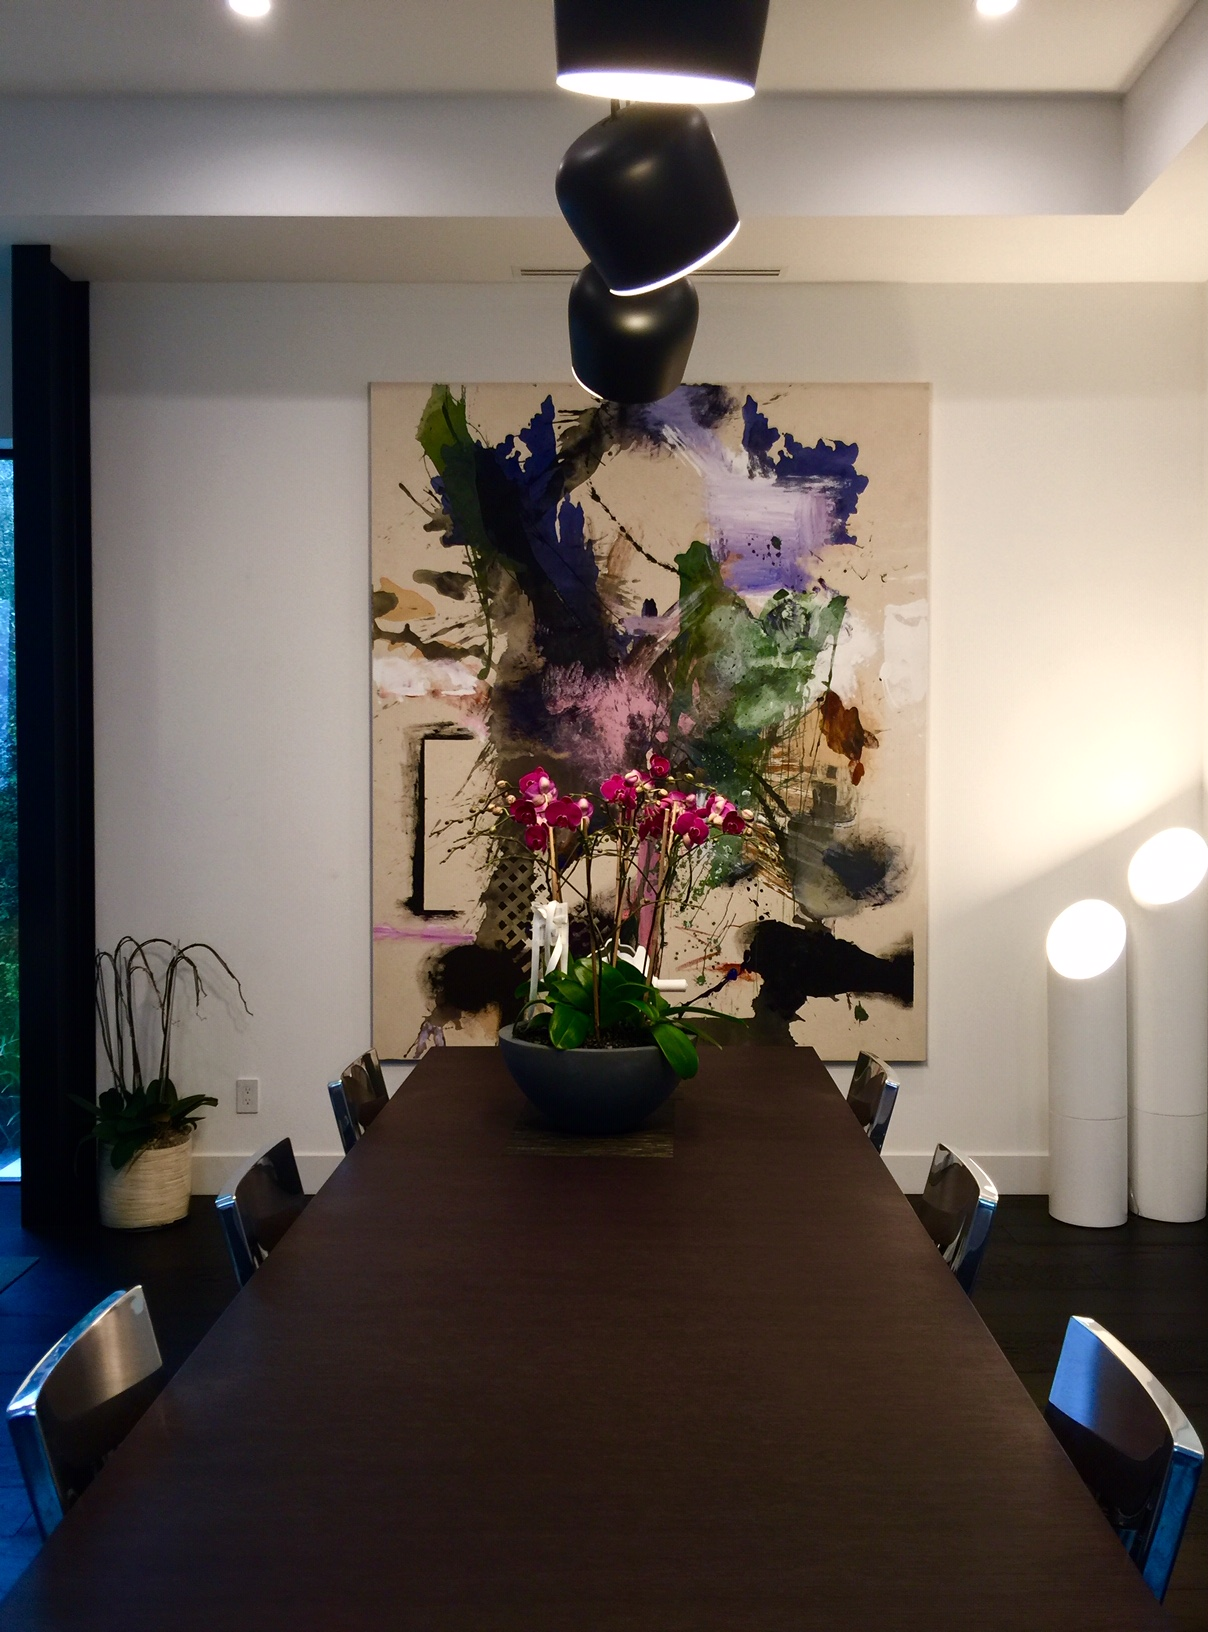 A painting by Elizabeth Neel overlooking the dining table. Courtesy of Melissa de la Cruz and Michael Johnston.